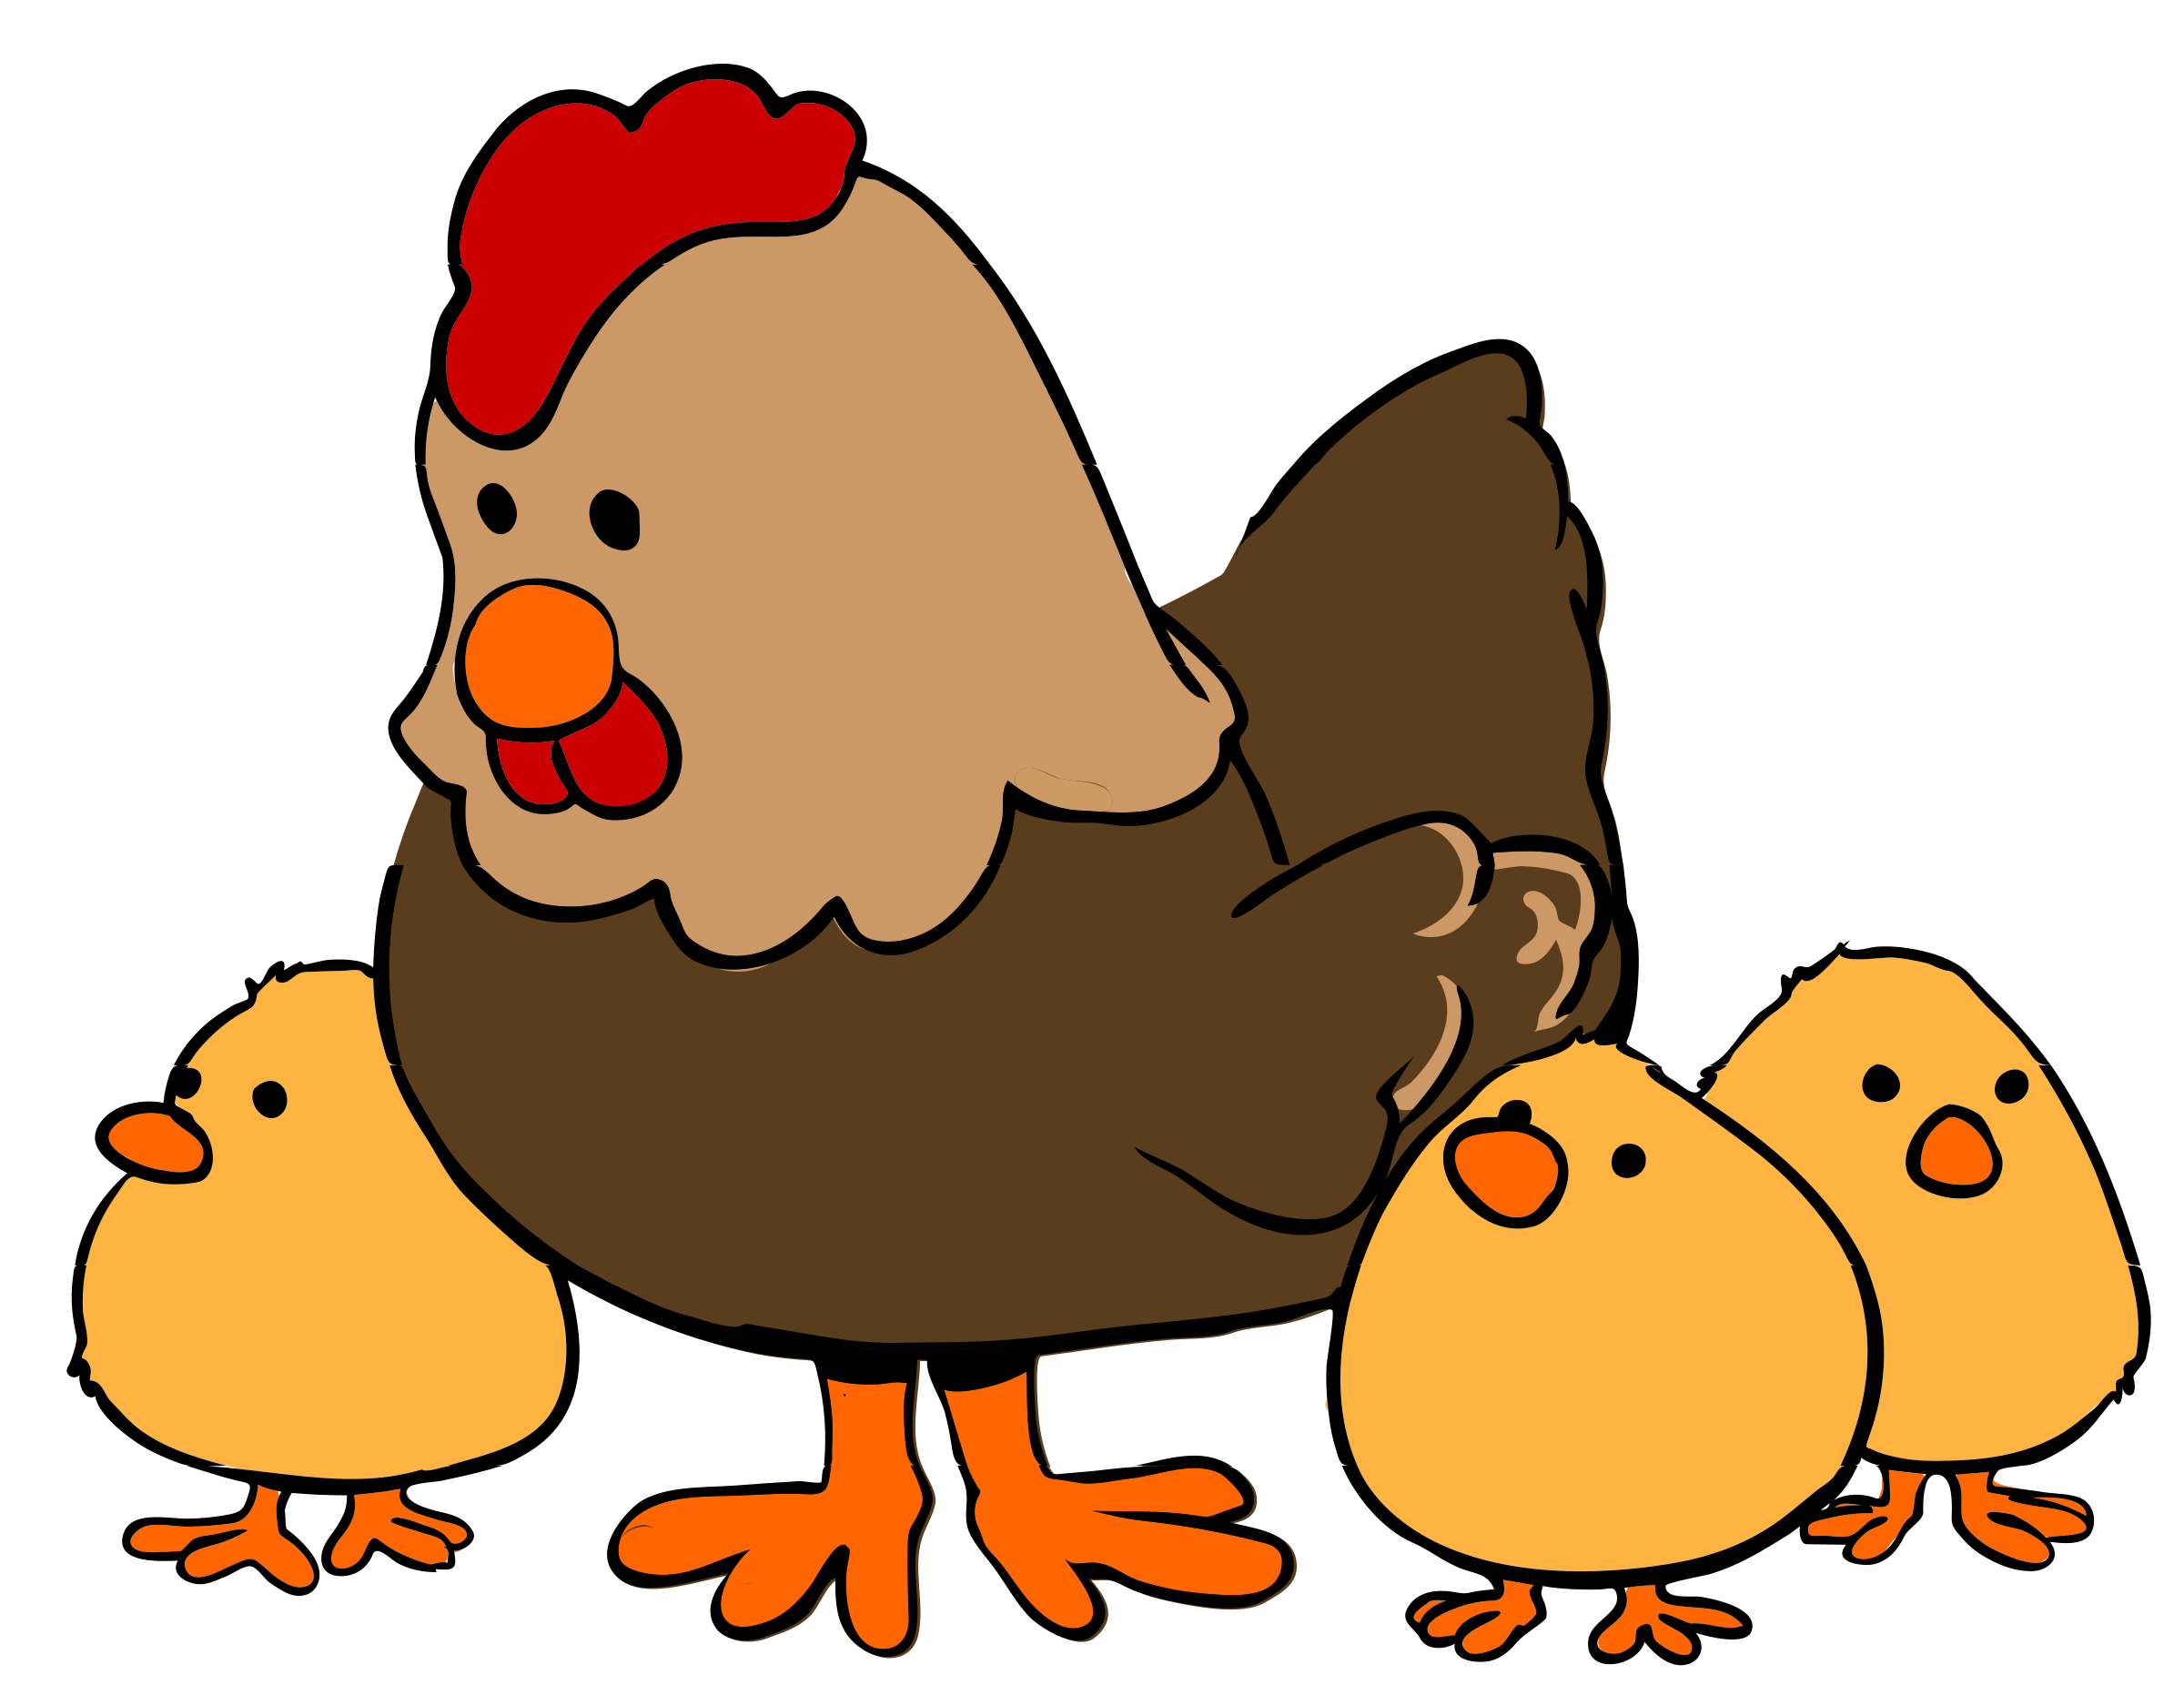 2400x1874 Great Cliparts For Free Download Chicken Clipart Chicken